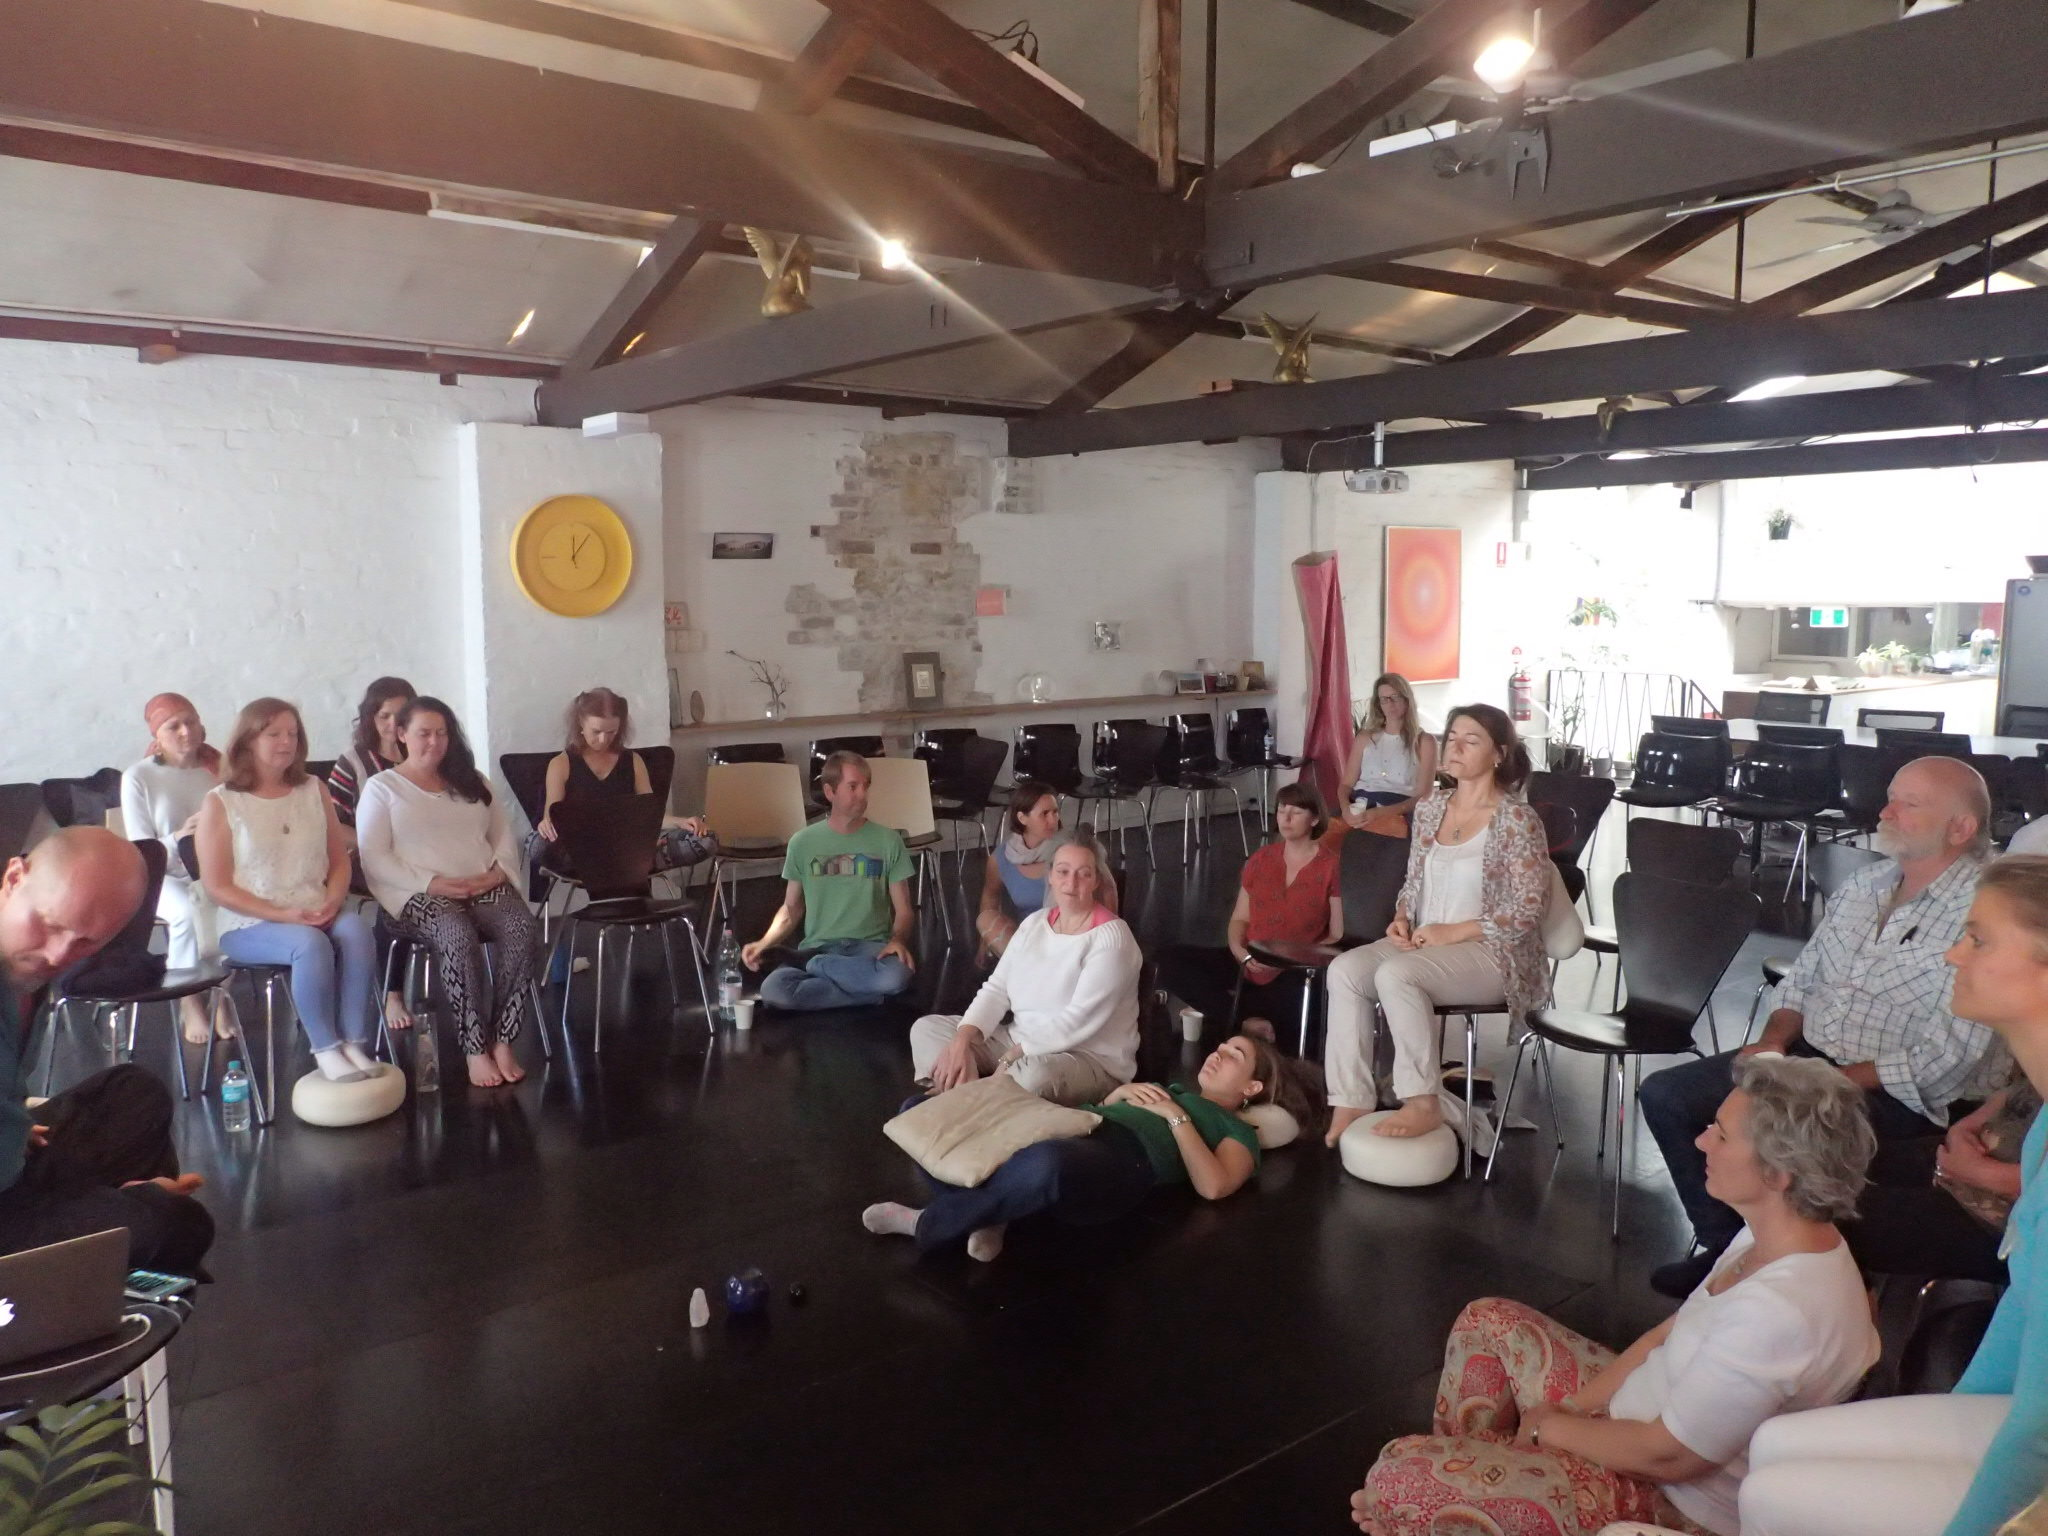 Openhand 11:11 group meditation